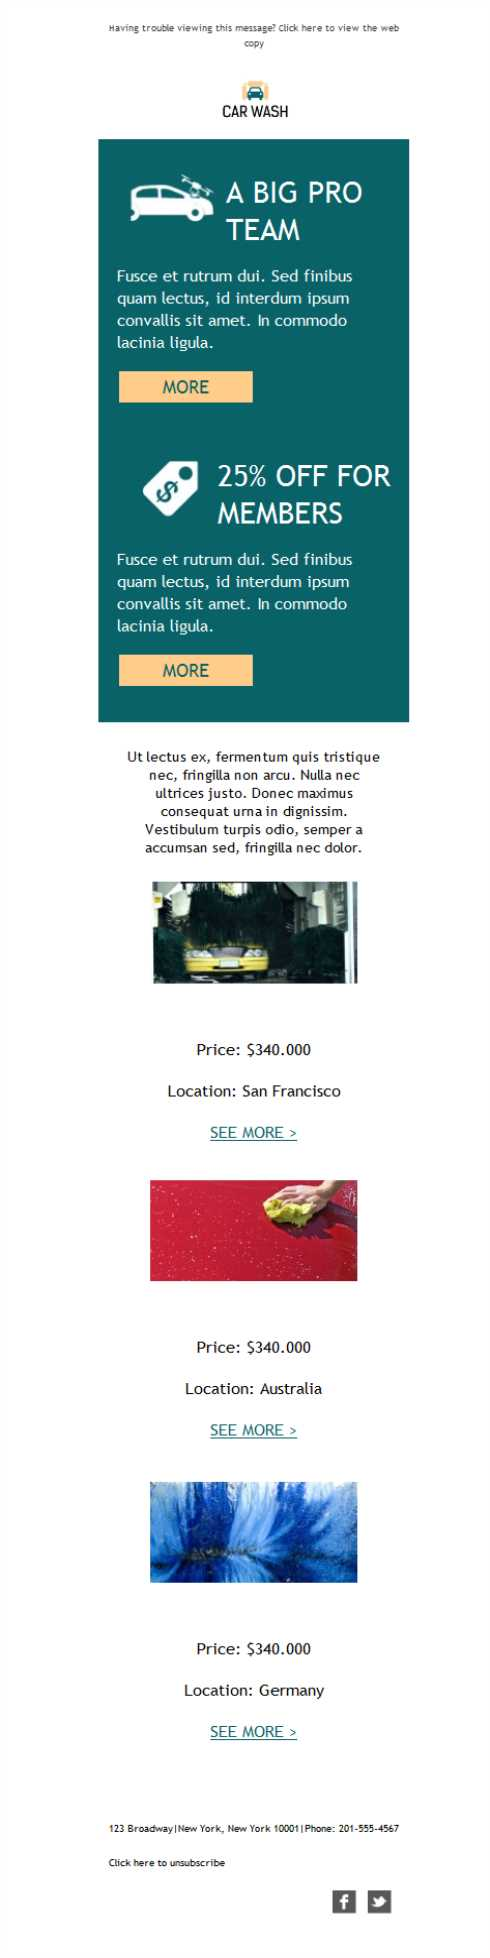 Templates Emailing Car Wash Promo Sarbacane